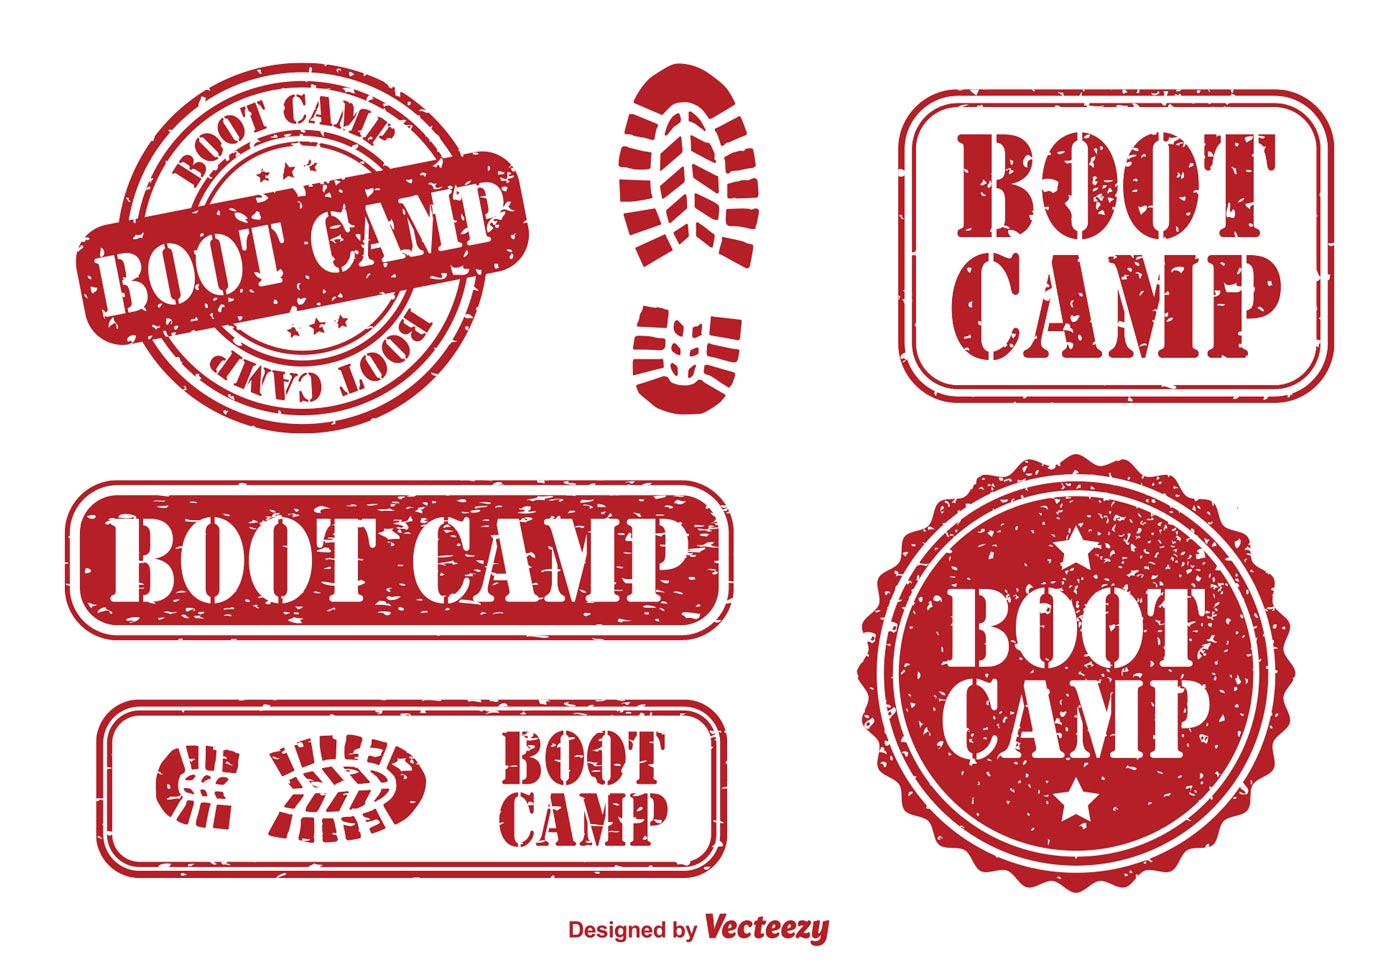 Boot Camp Rubber Stamps - Download Free Vector Art, Stock ...